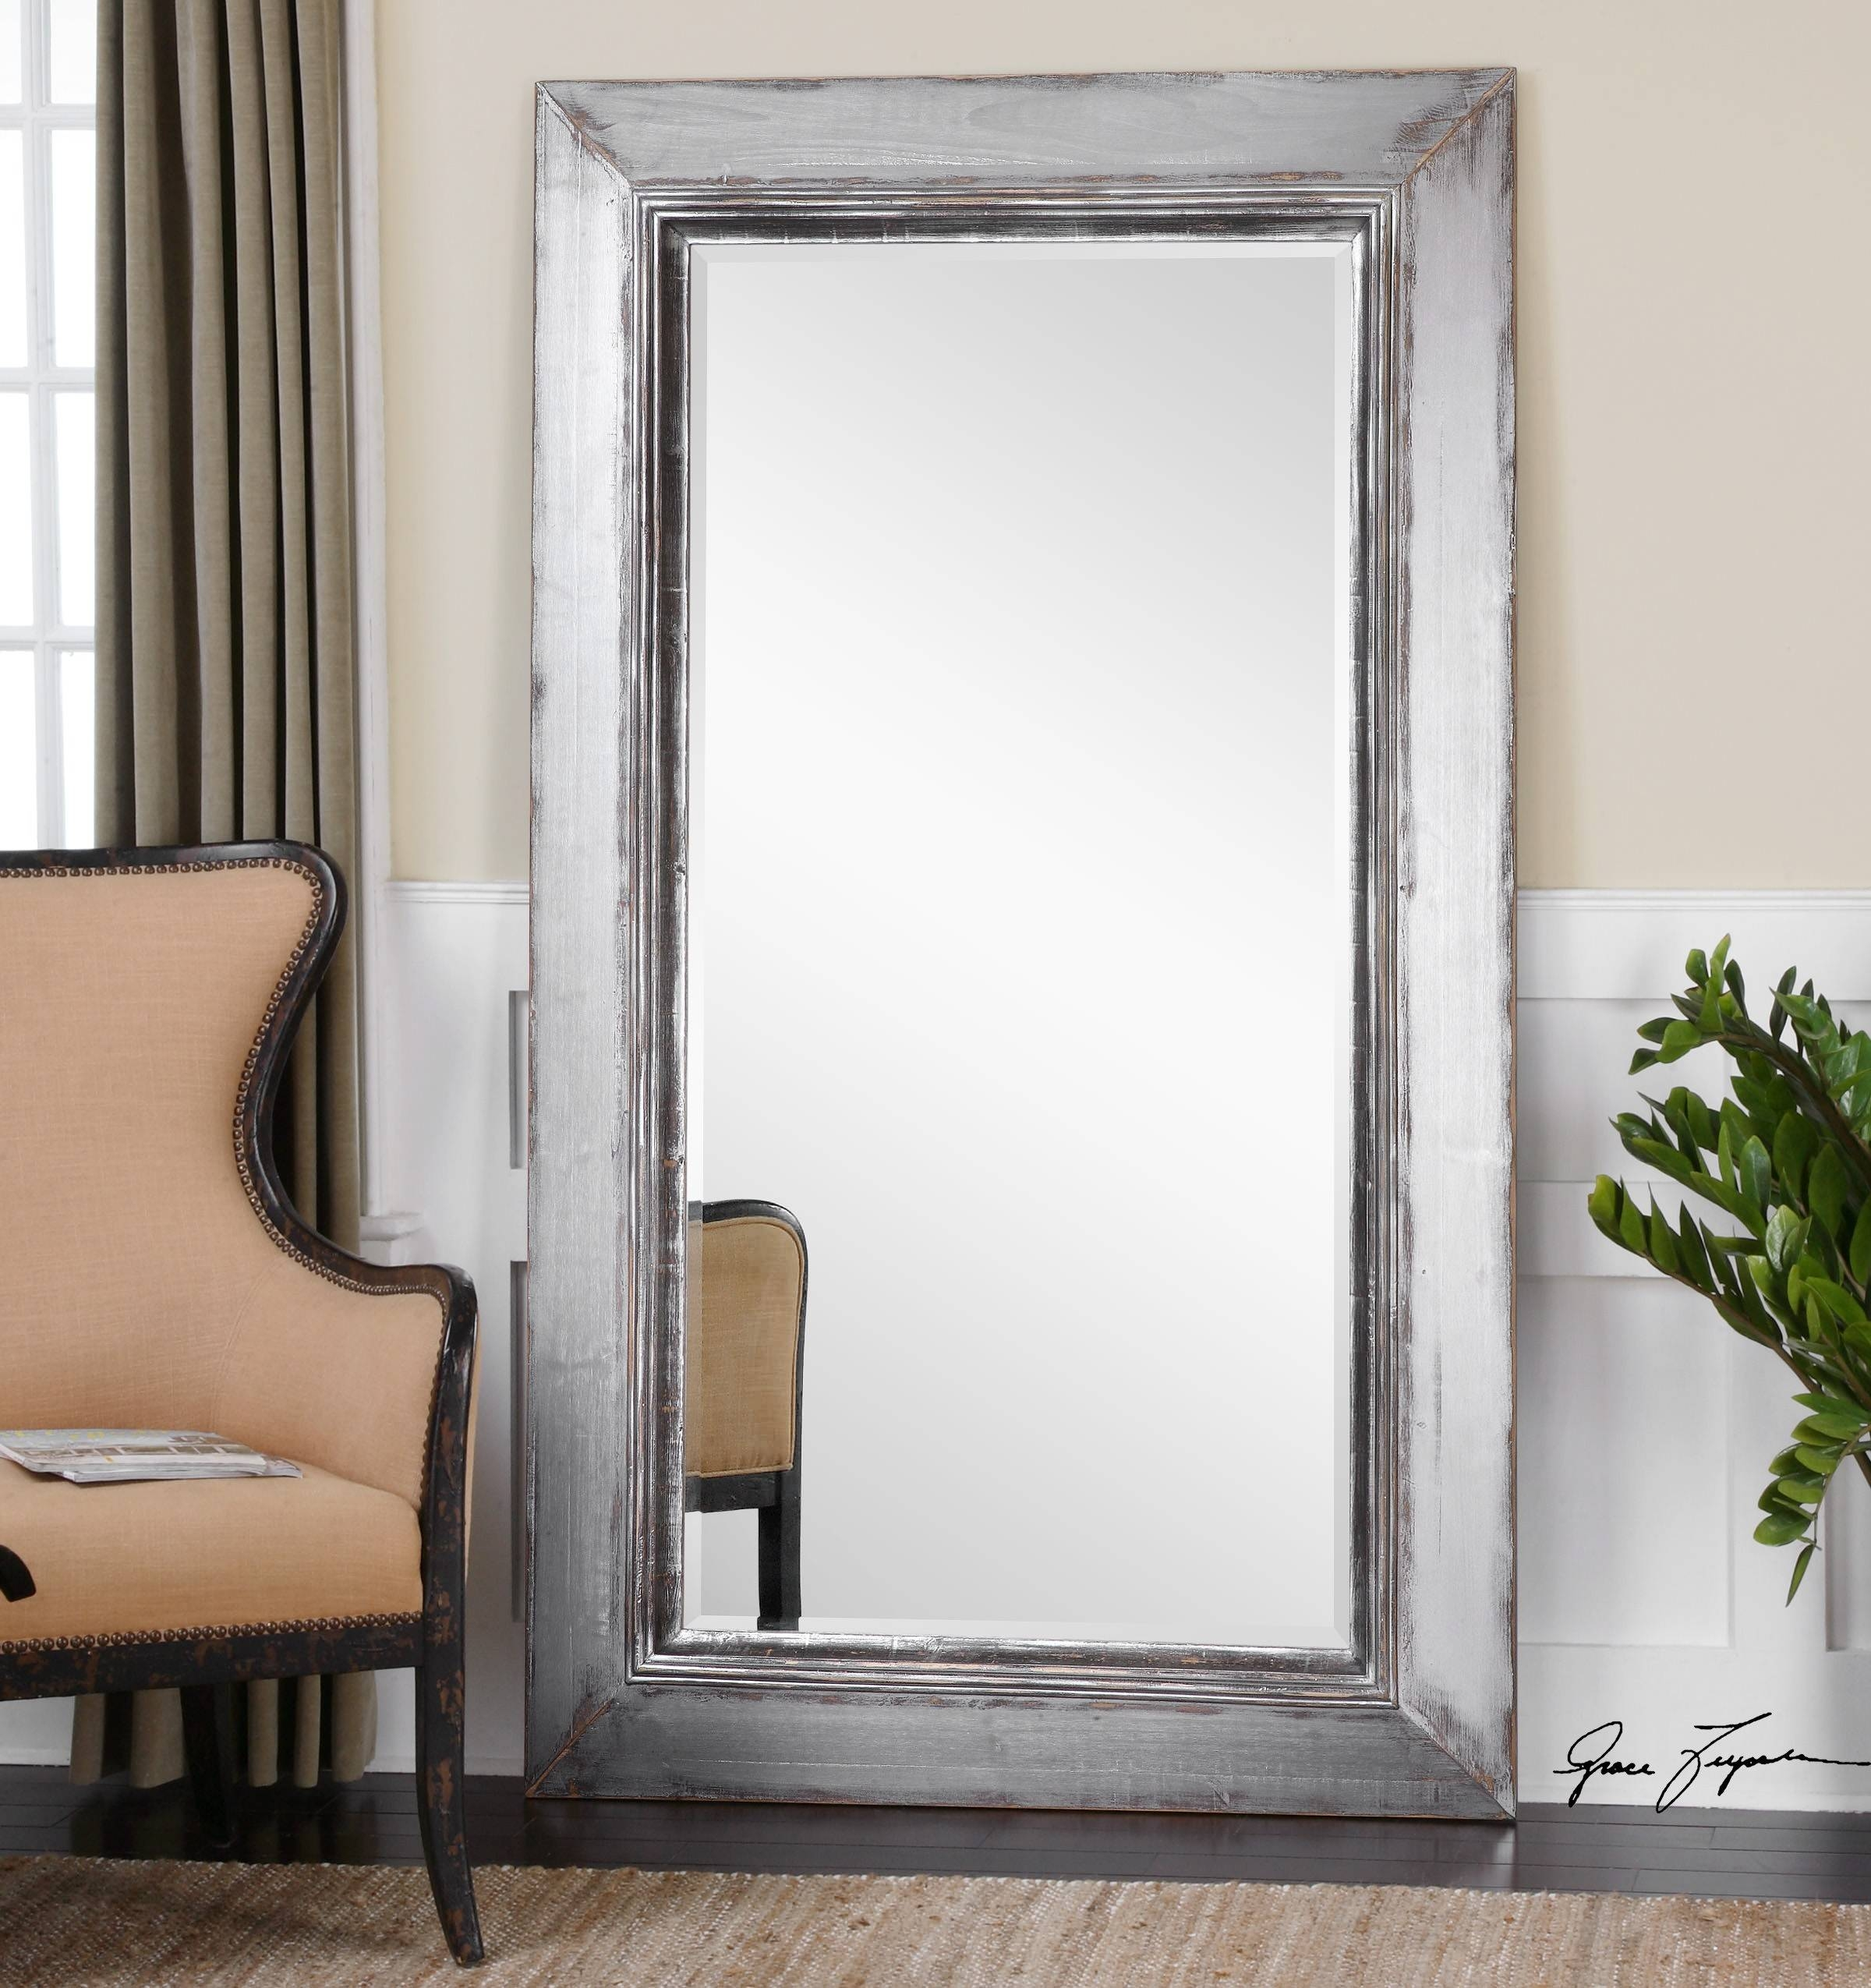 Furniture: Mesmerizing Oversized Floor Mirror For Home Furniture for Full Length Decorative Mirrors (Image 16 of 25)